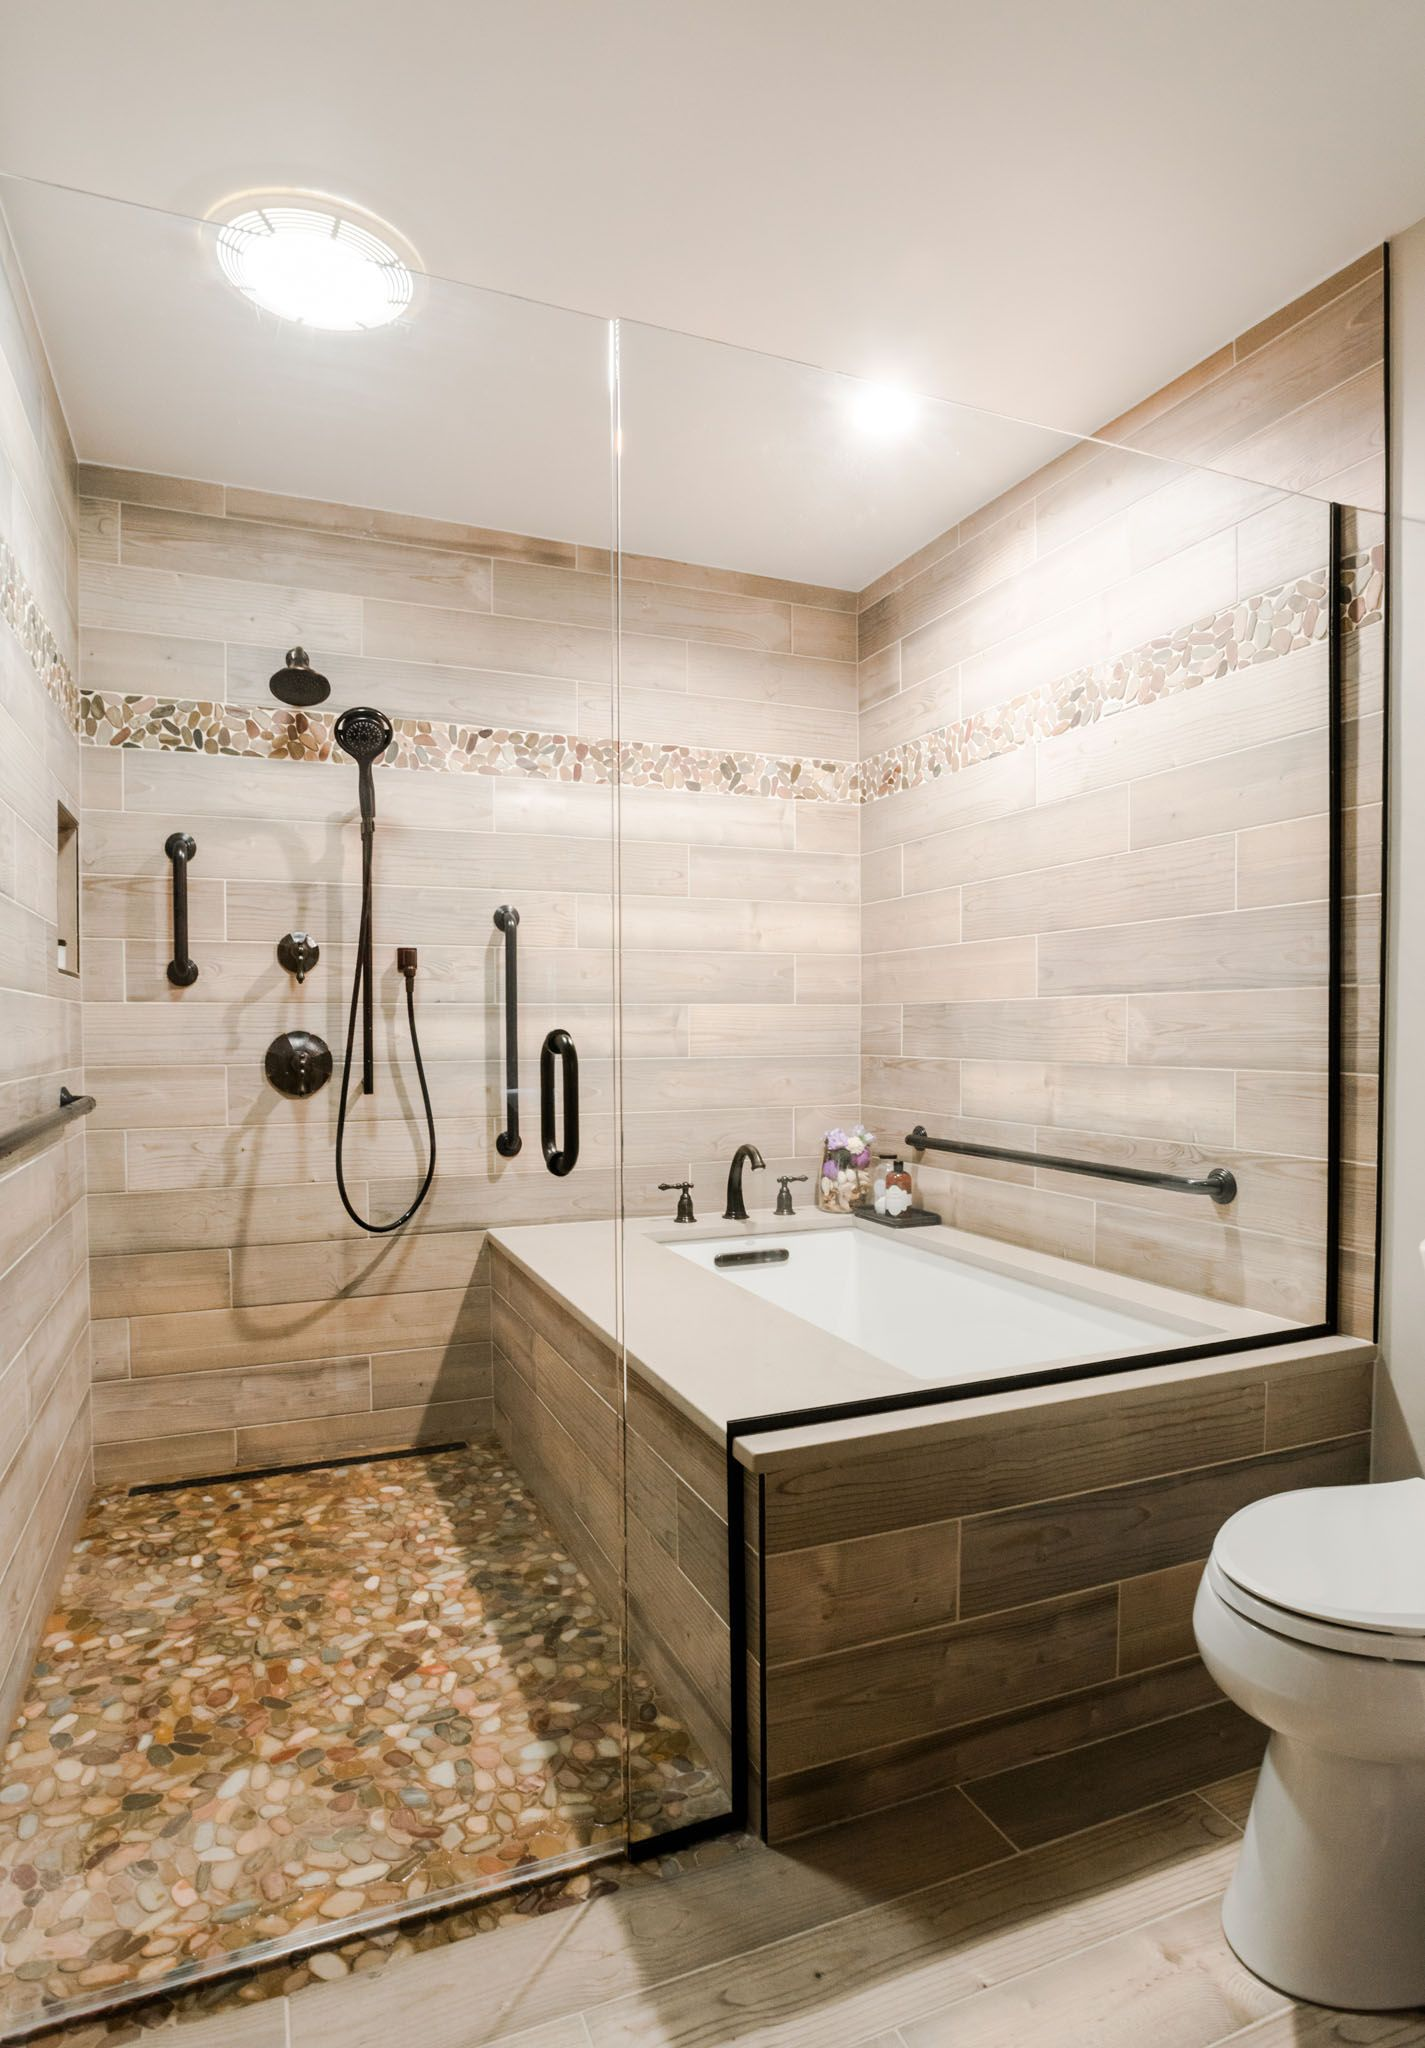 This Master Bath Remodel Features A Beautiful Corner Tub Inside A Walk In Shower The Si Bathroom Remodel Master Bathroom Remodel Shower Master Bathroom Shower